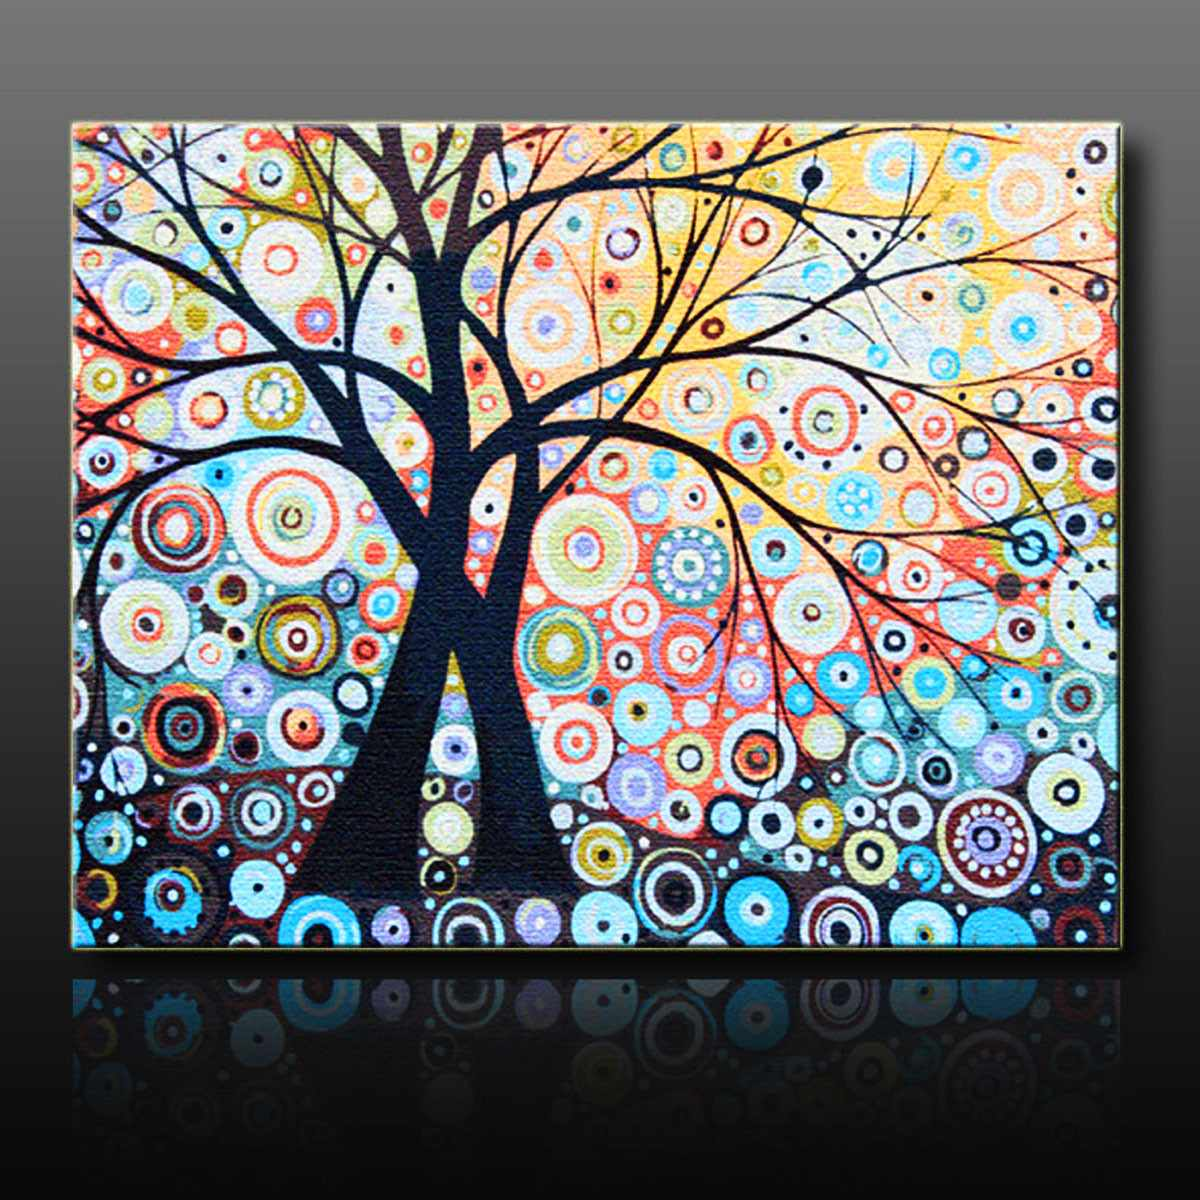 Home House Decorate Magic New Diy Paint By Number 16x20inch Kit Abstract Tree On Canvas Cool Boy